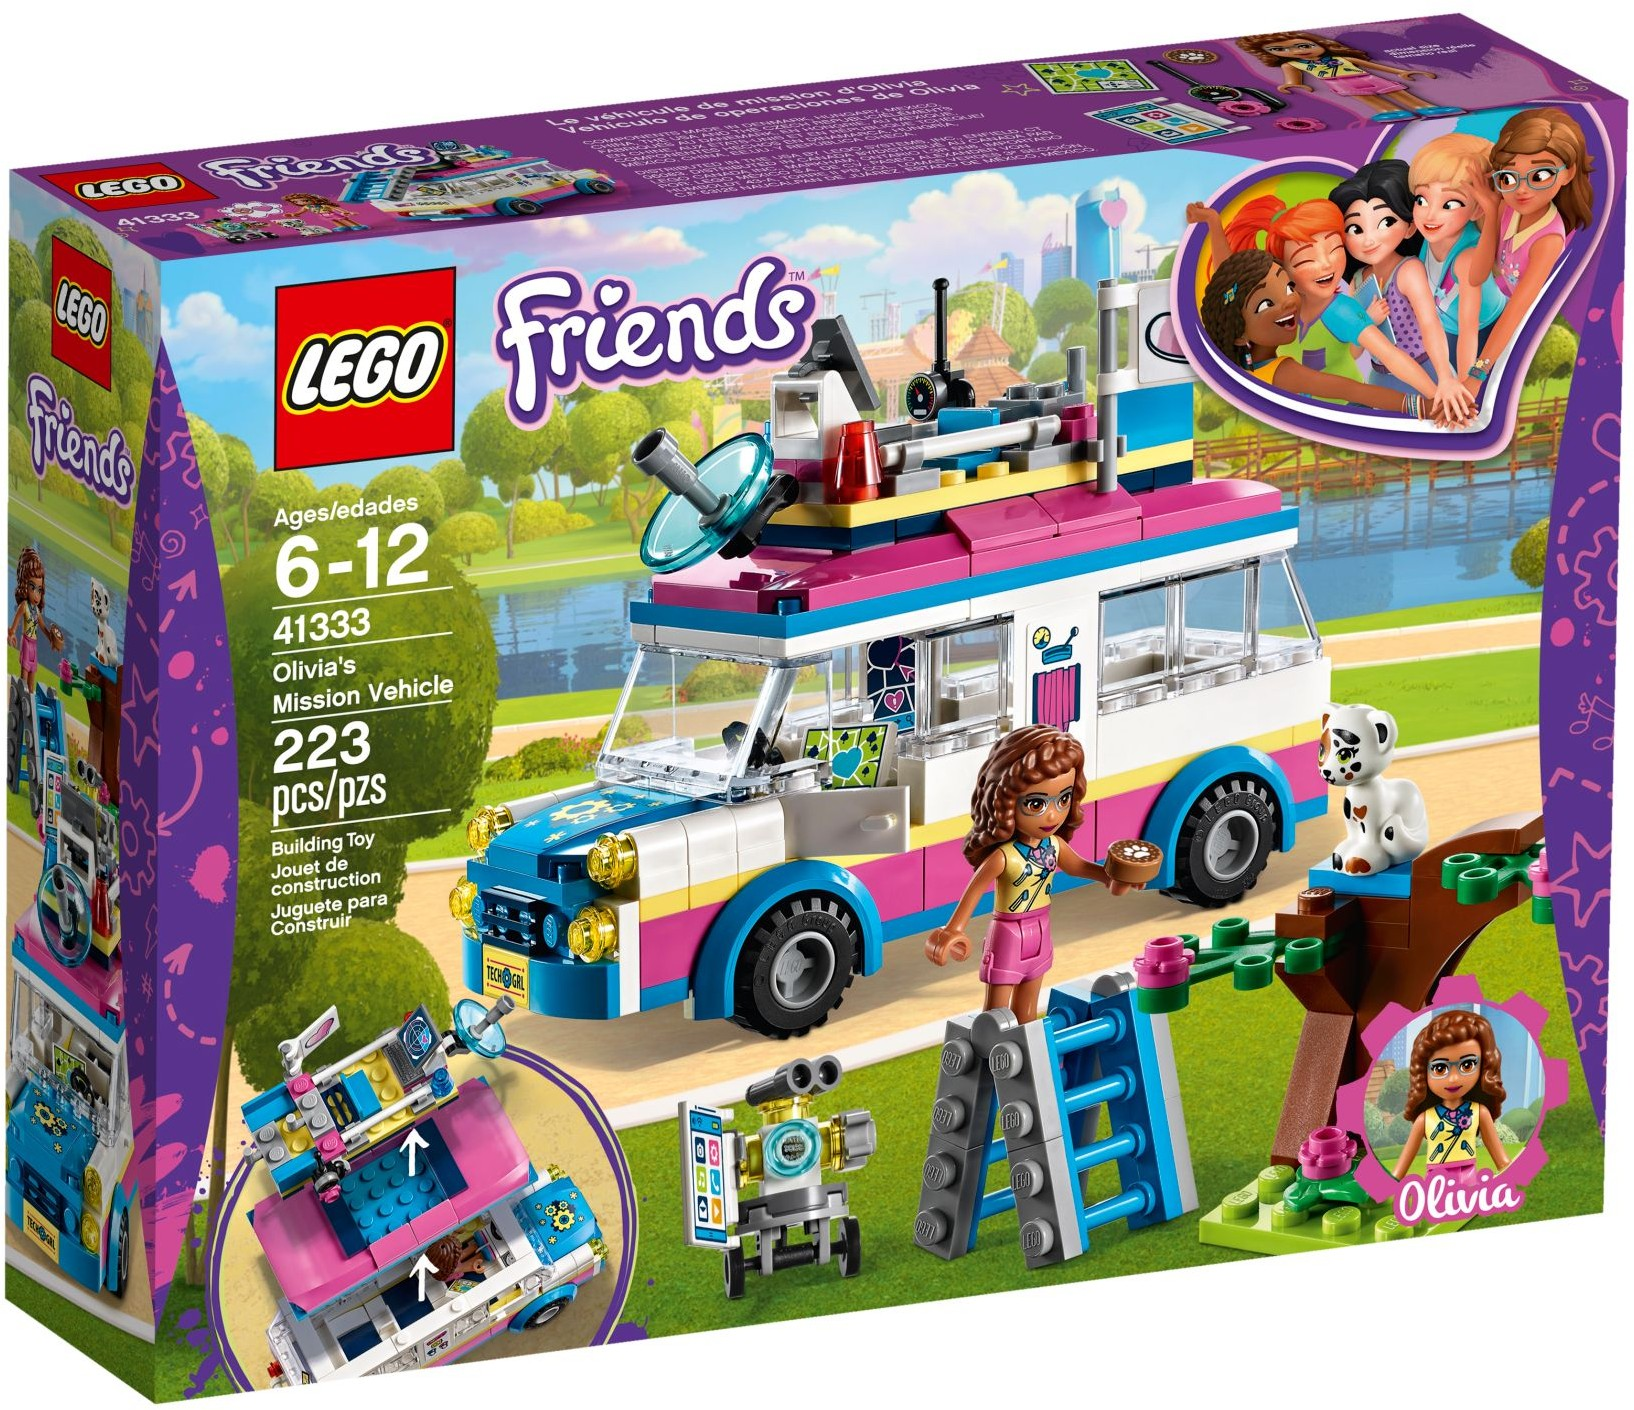 LEGO Friends Sets: 41333 Olivia's Mission Vehicle NEW